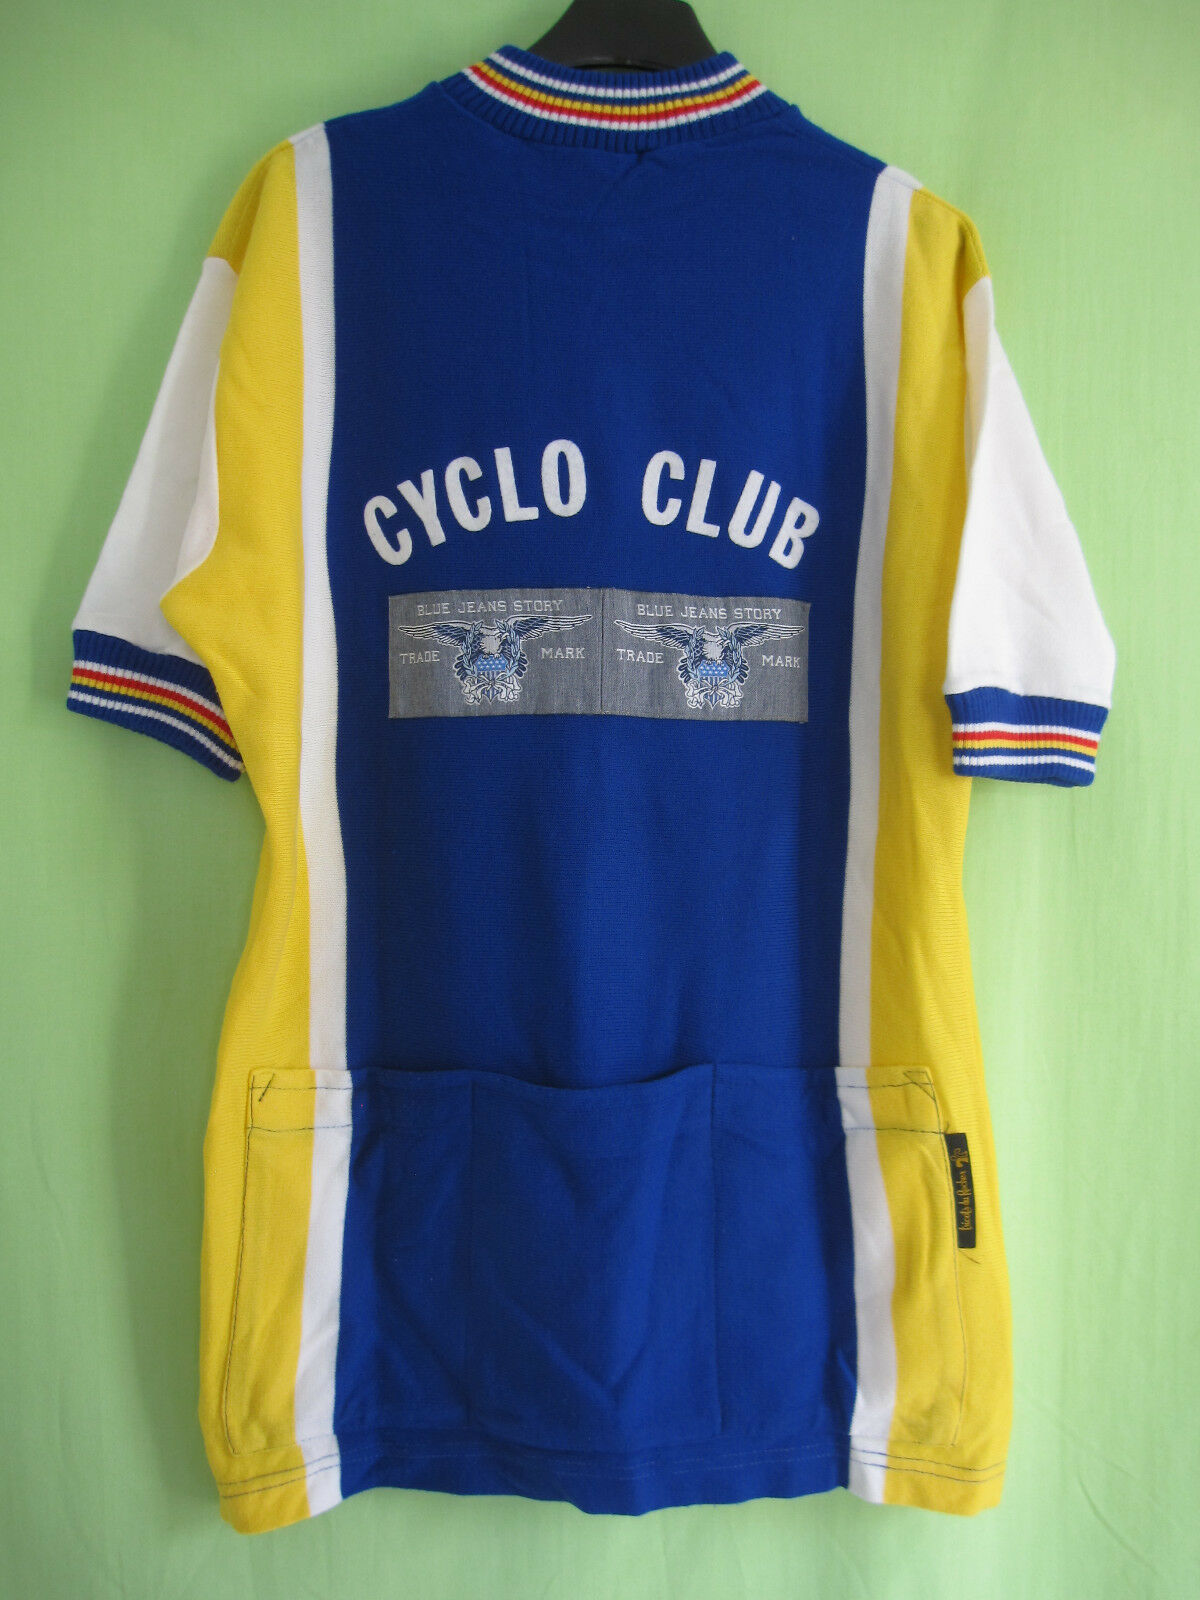 Maillot Cycliste bluee Jeans Cyclo Club vintage 70'S acrylique Jersey - 4   L